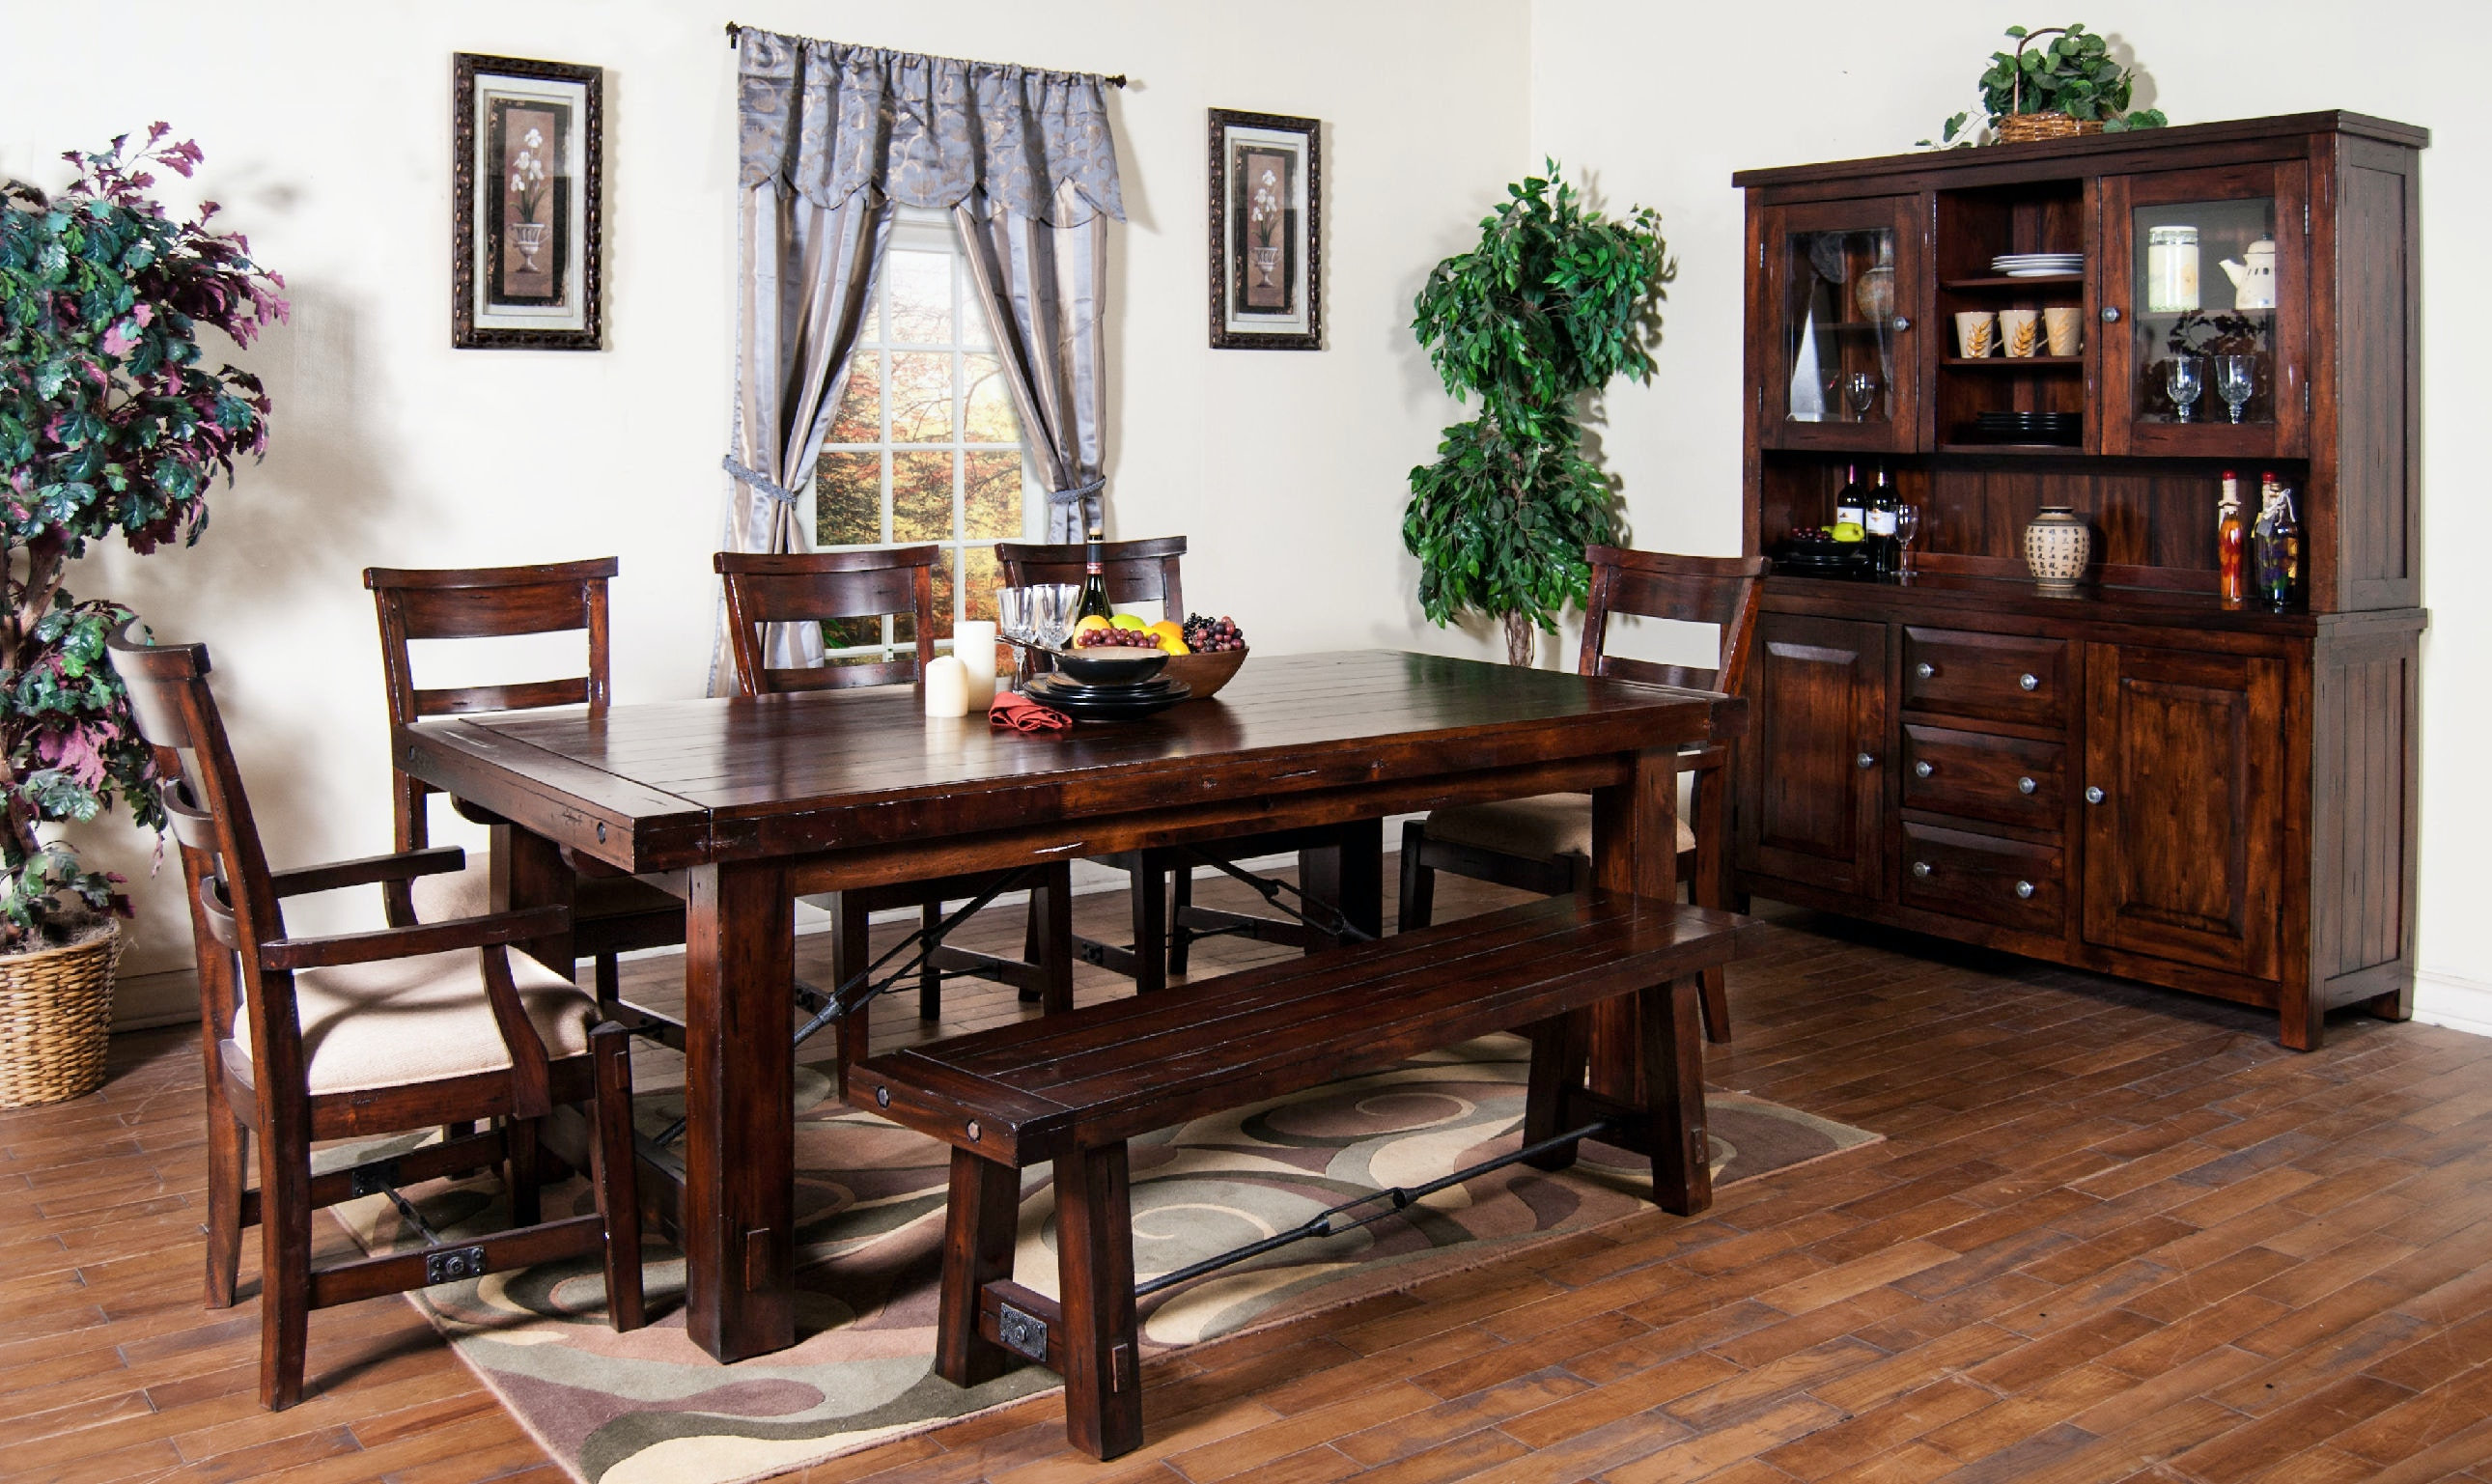 Merveilleux Sunny Designs Dining Room Vineyard Extension Table 1316RM At China Towne  Furniture